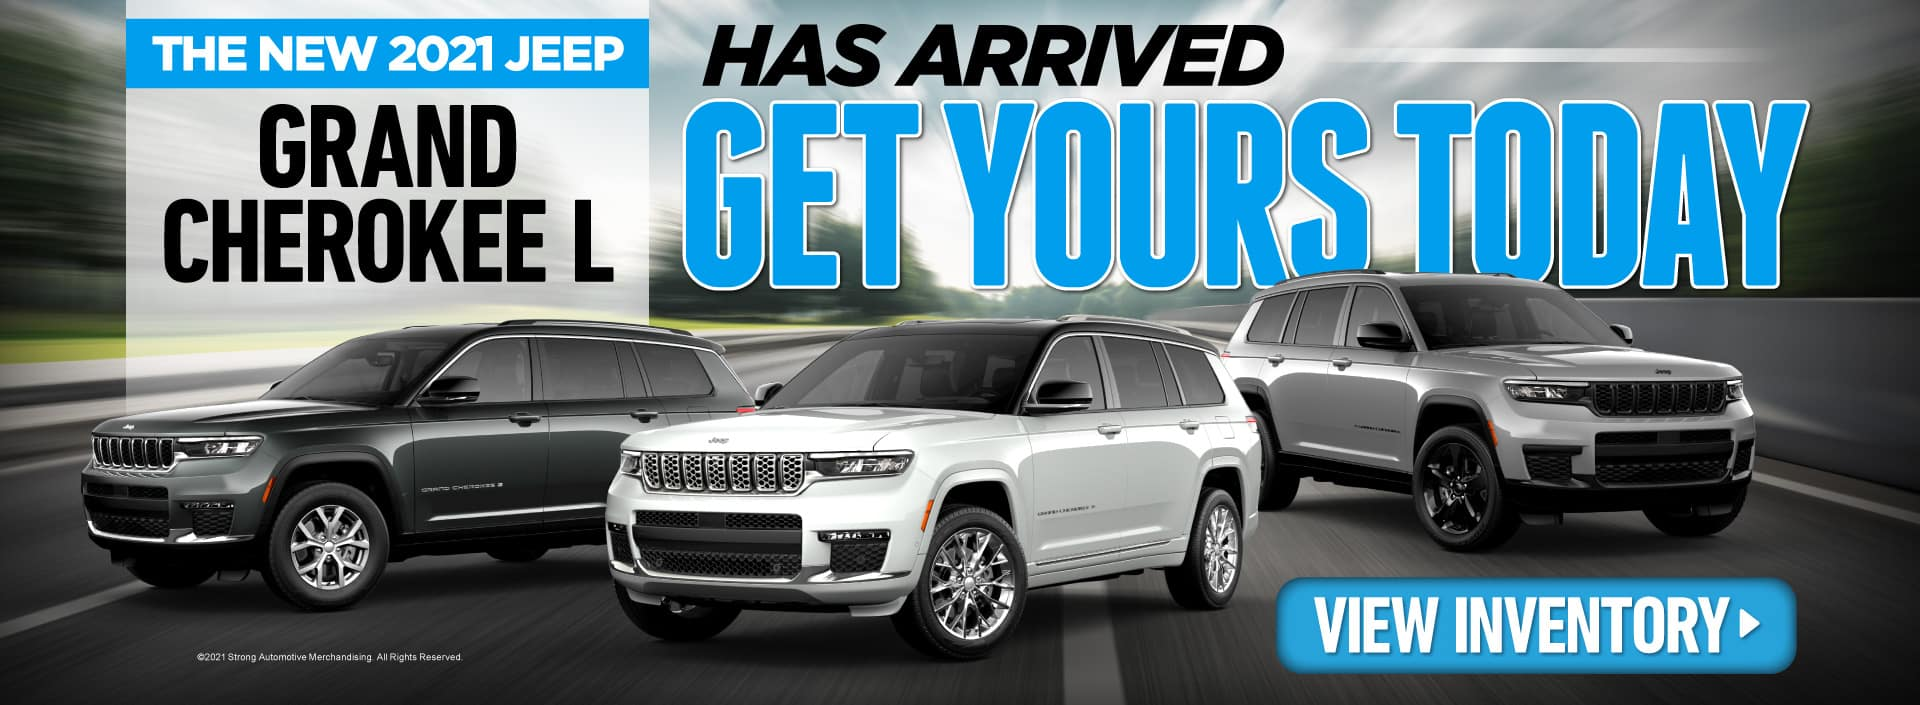 The All New Jeep Grand Cherokee Has Arrived